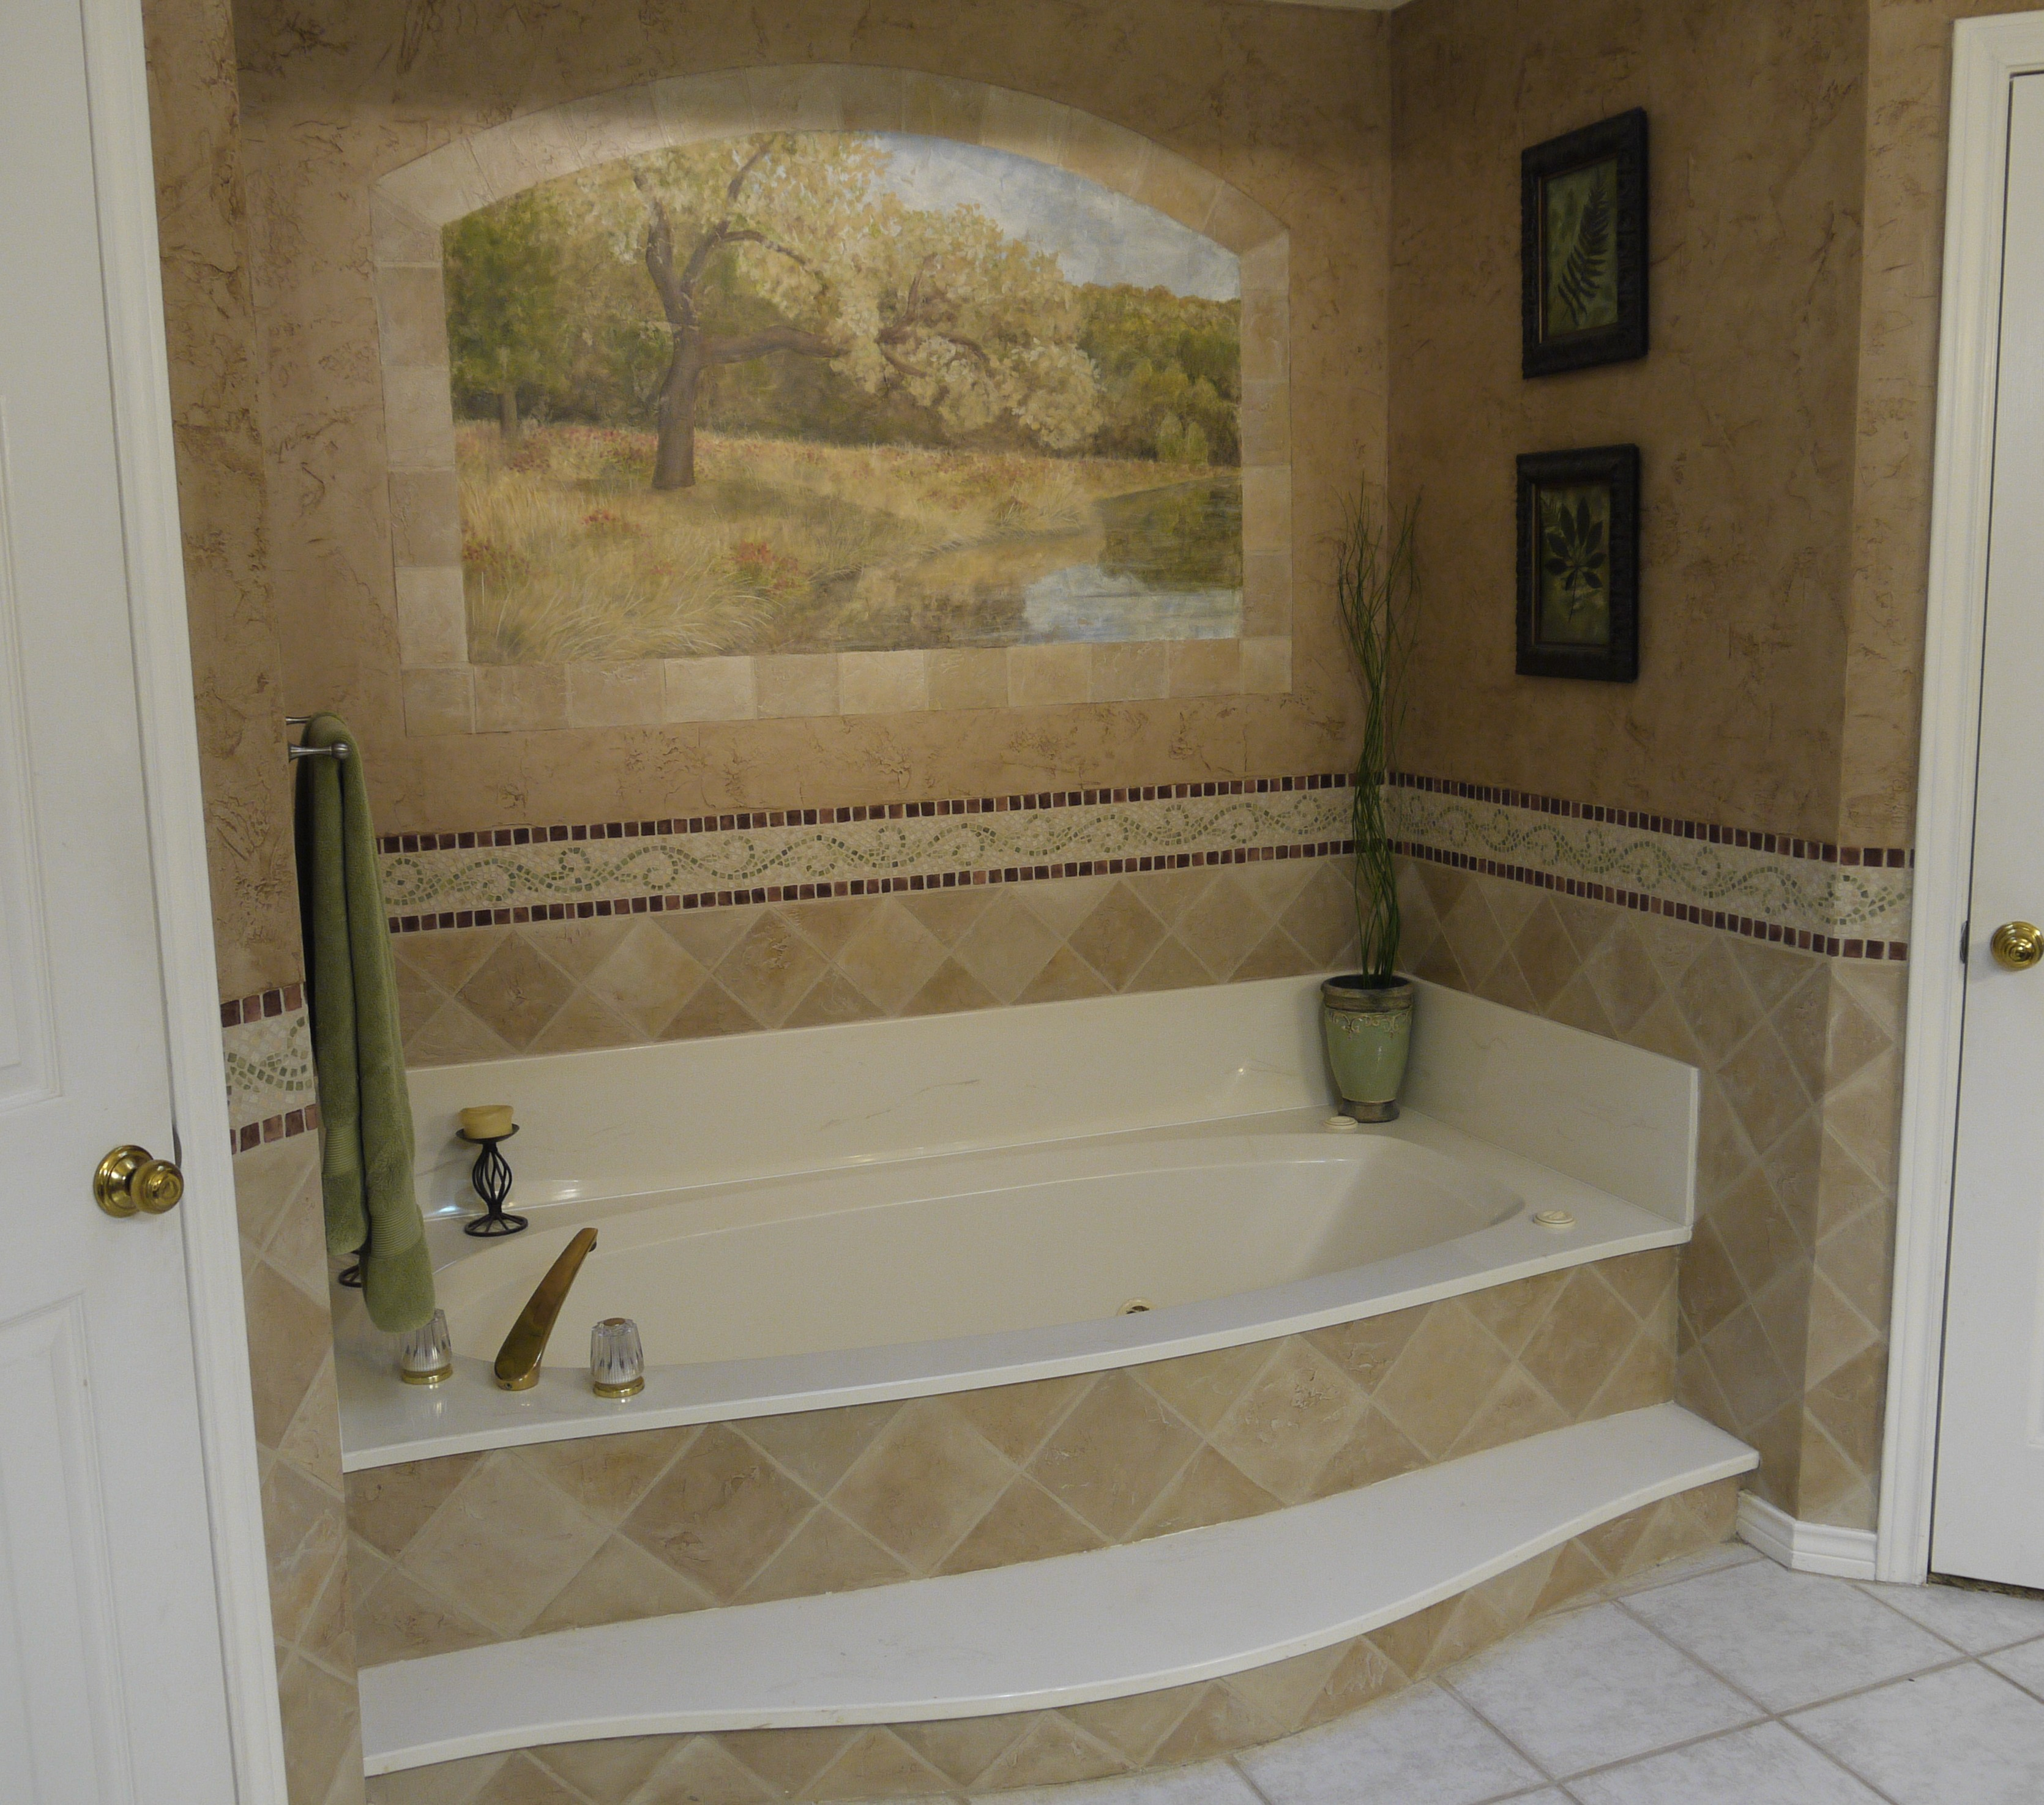 Painting Bathroom Tile Around Tub Bathroom Design